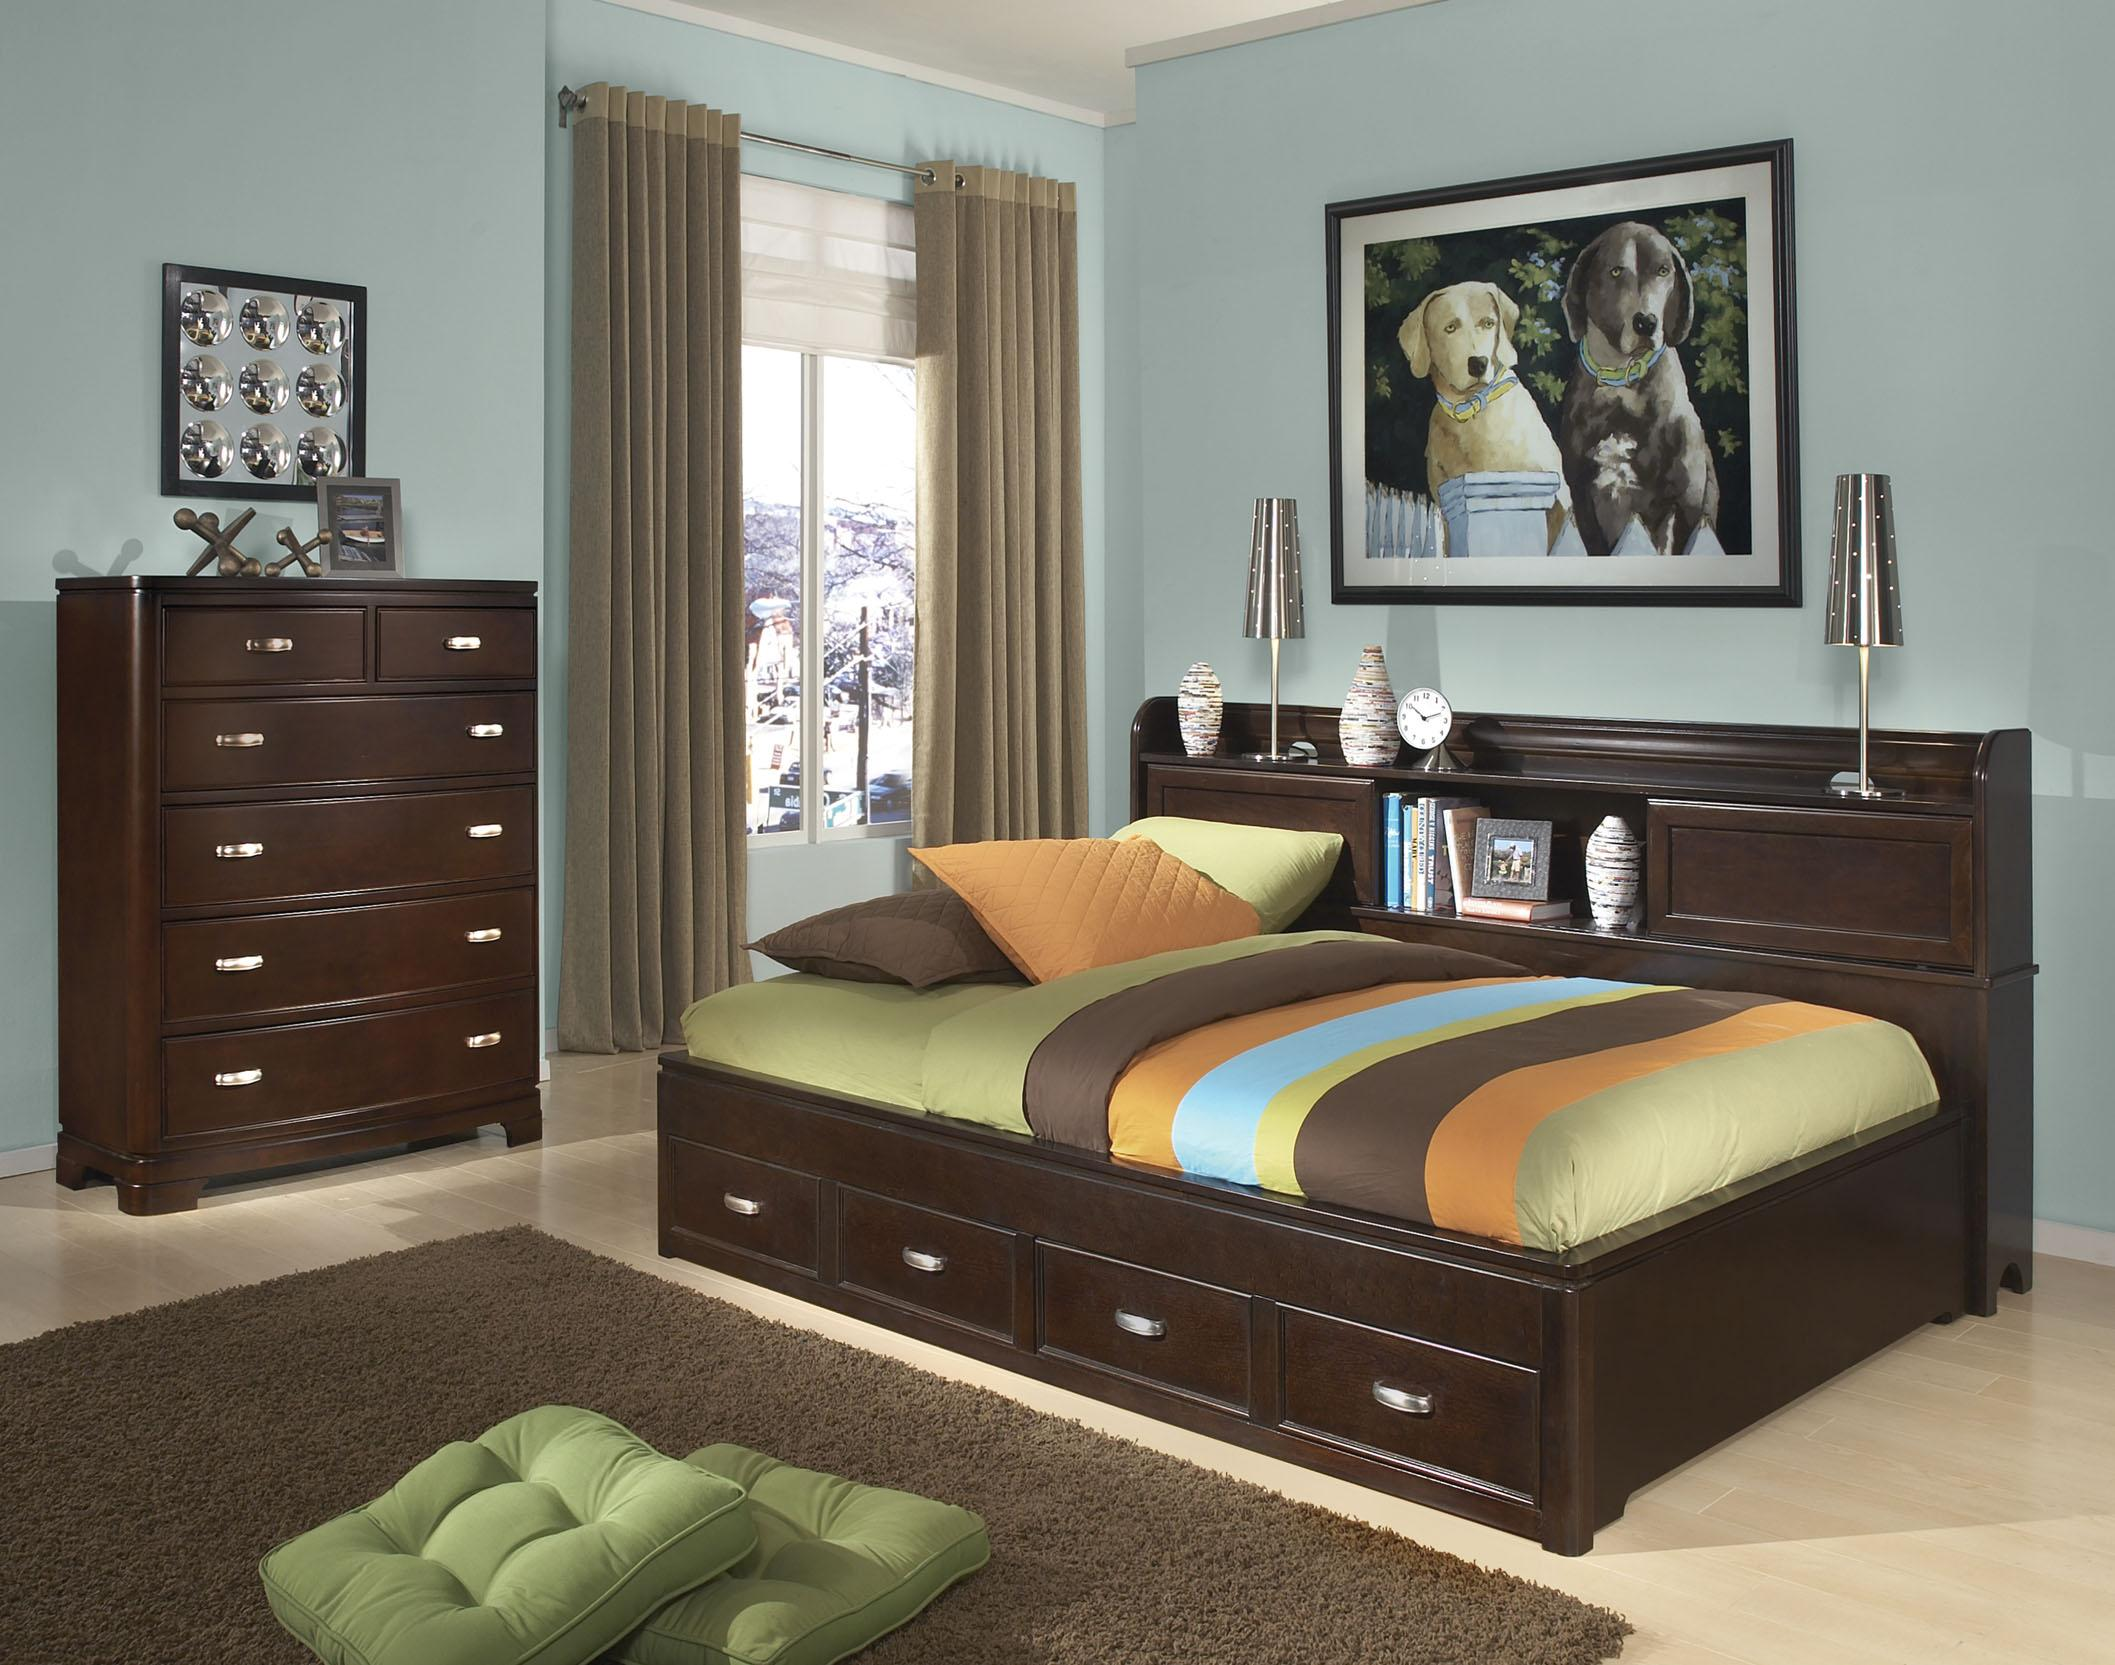 Legacy Classic Kids Park City Twin Bedroom Group - Item Number: 9980 T Bedroom Group 1